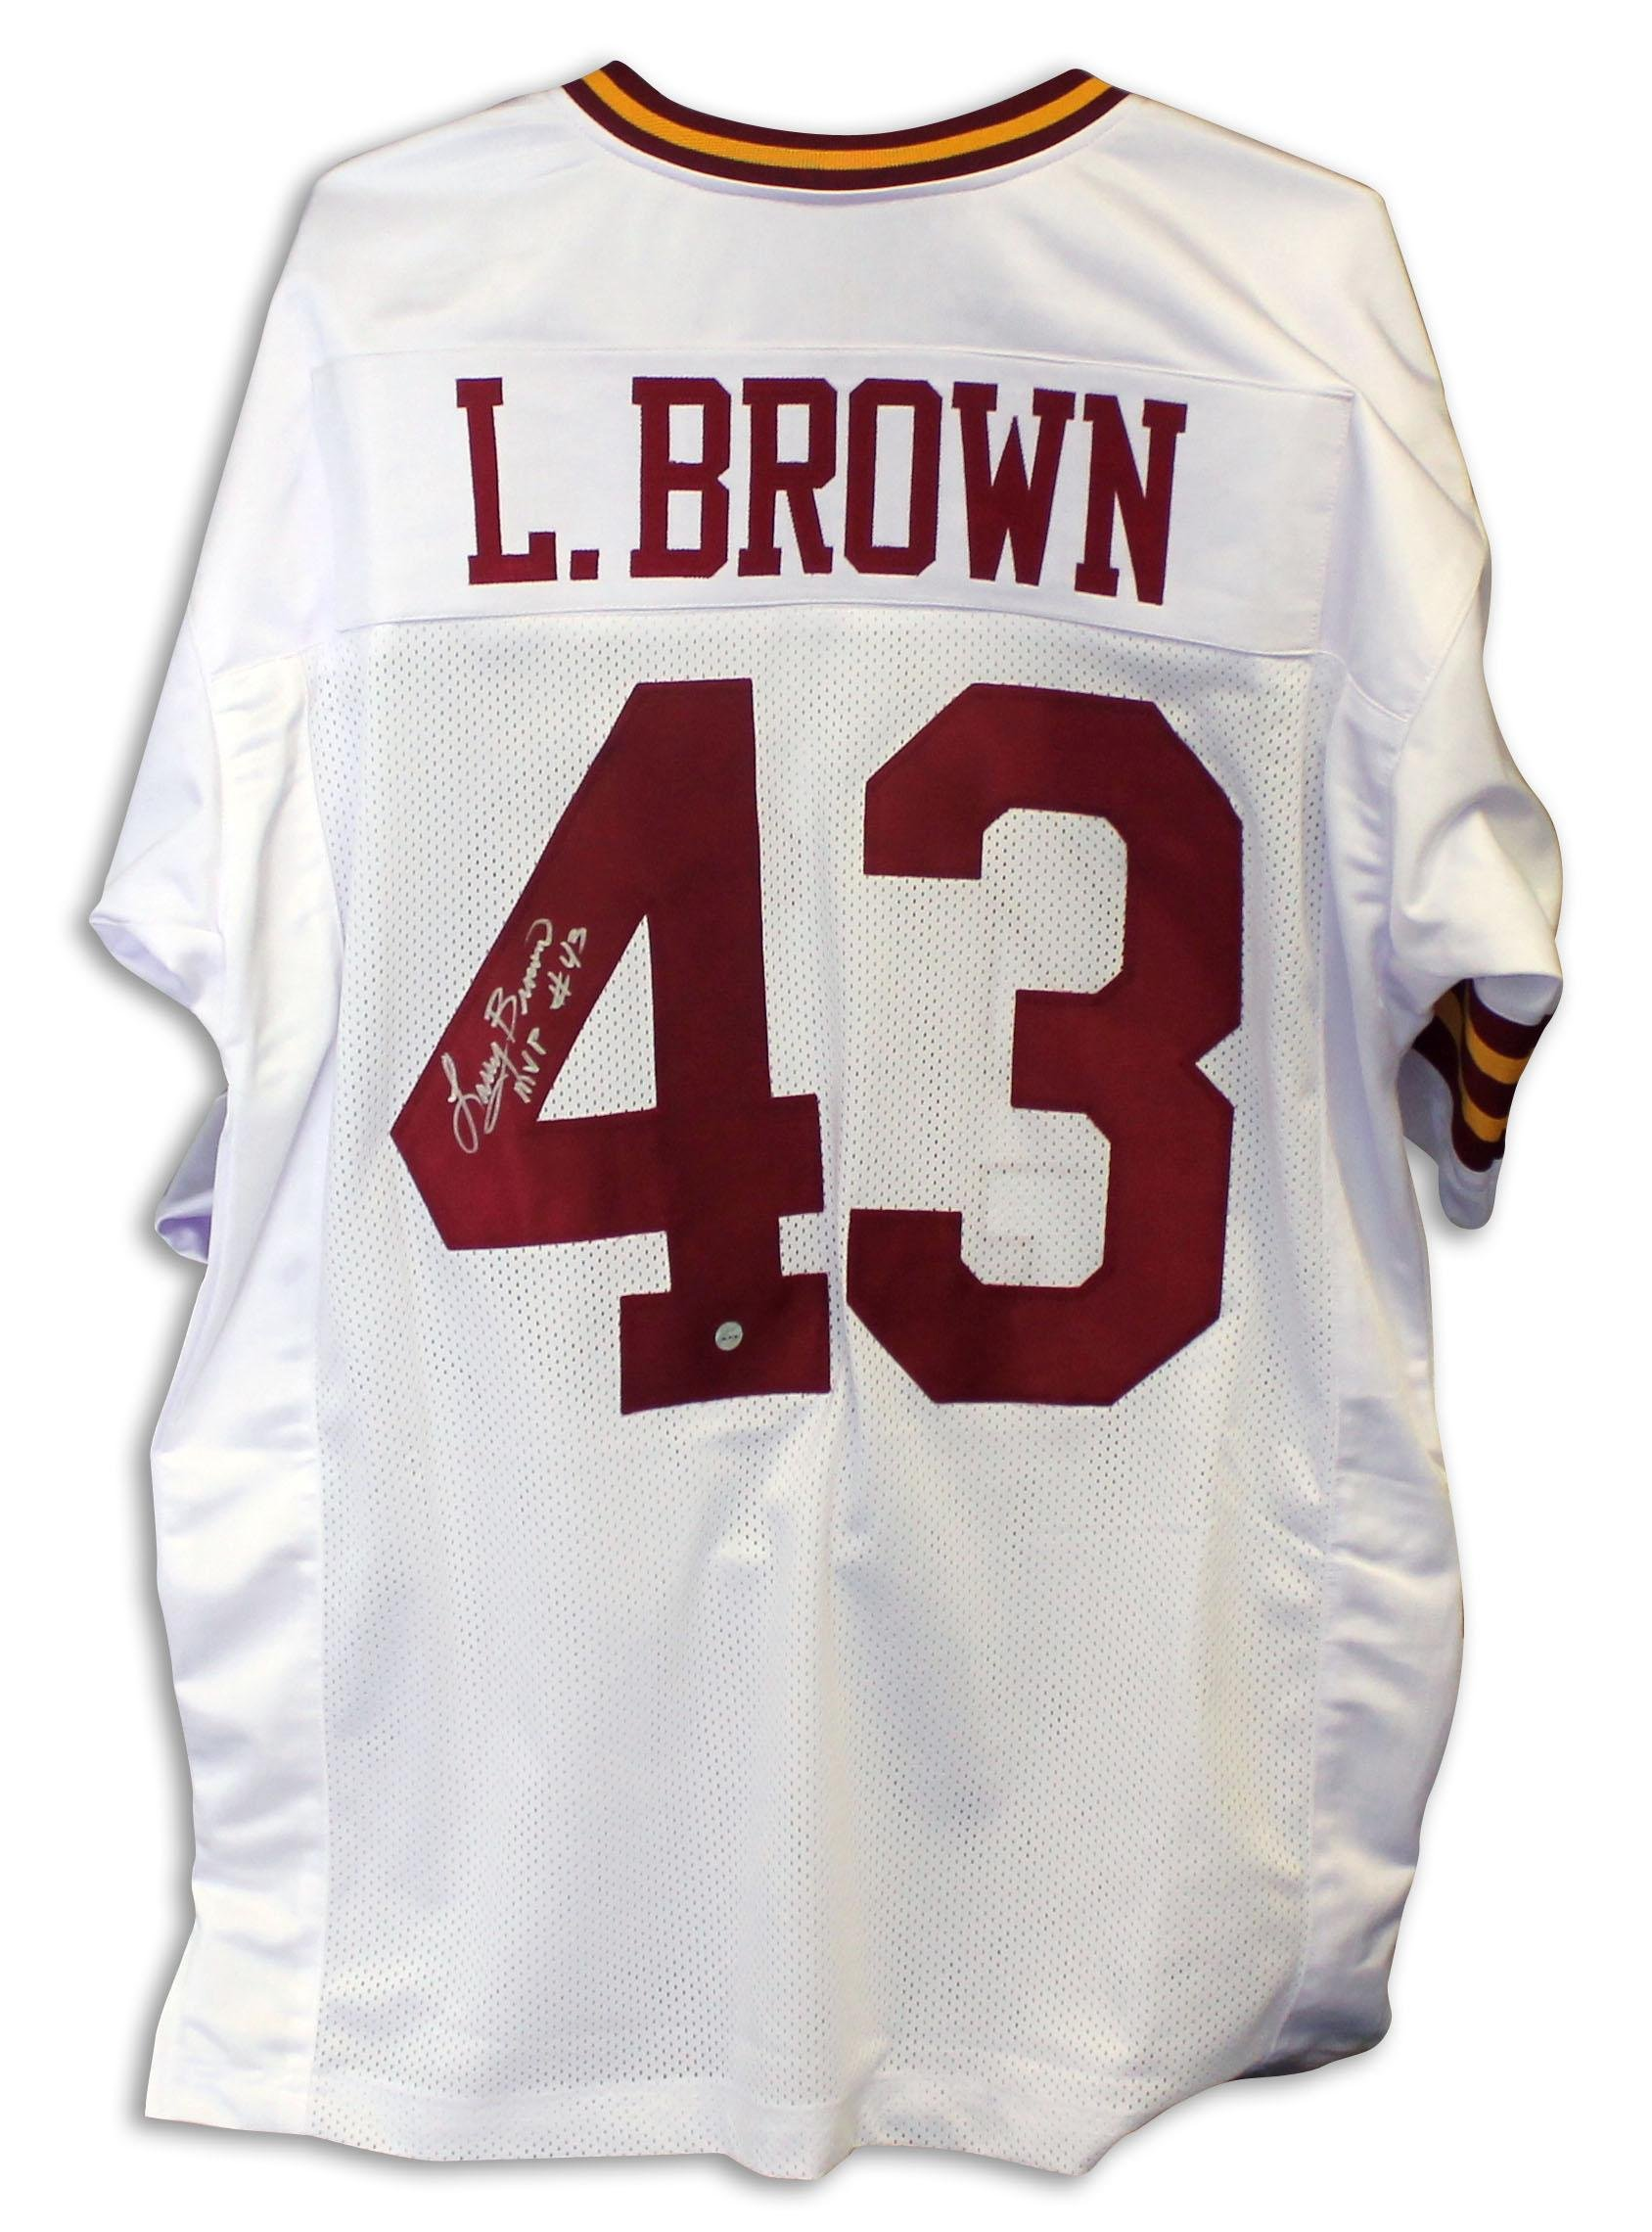 "Larry Brown Washington Redskins Autographed White Jersey Inscribed""MVP"" Autographed Autographed NFL Jerseys"